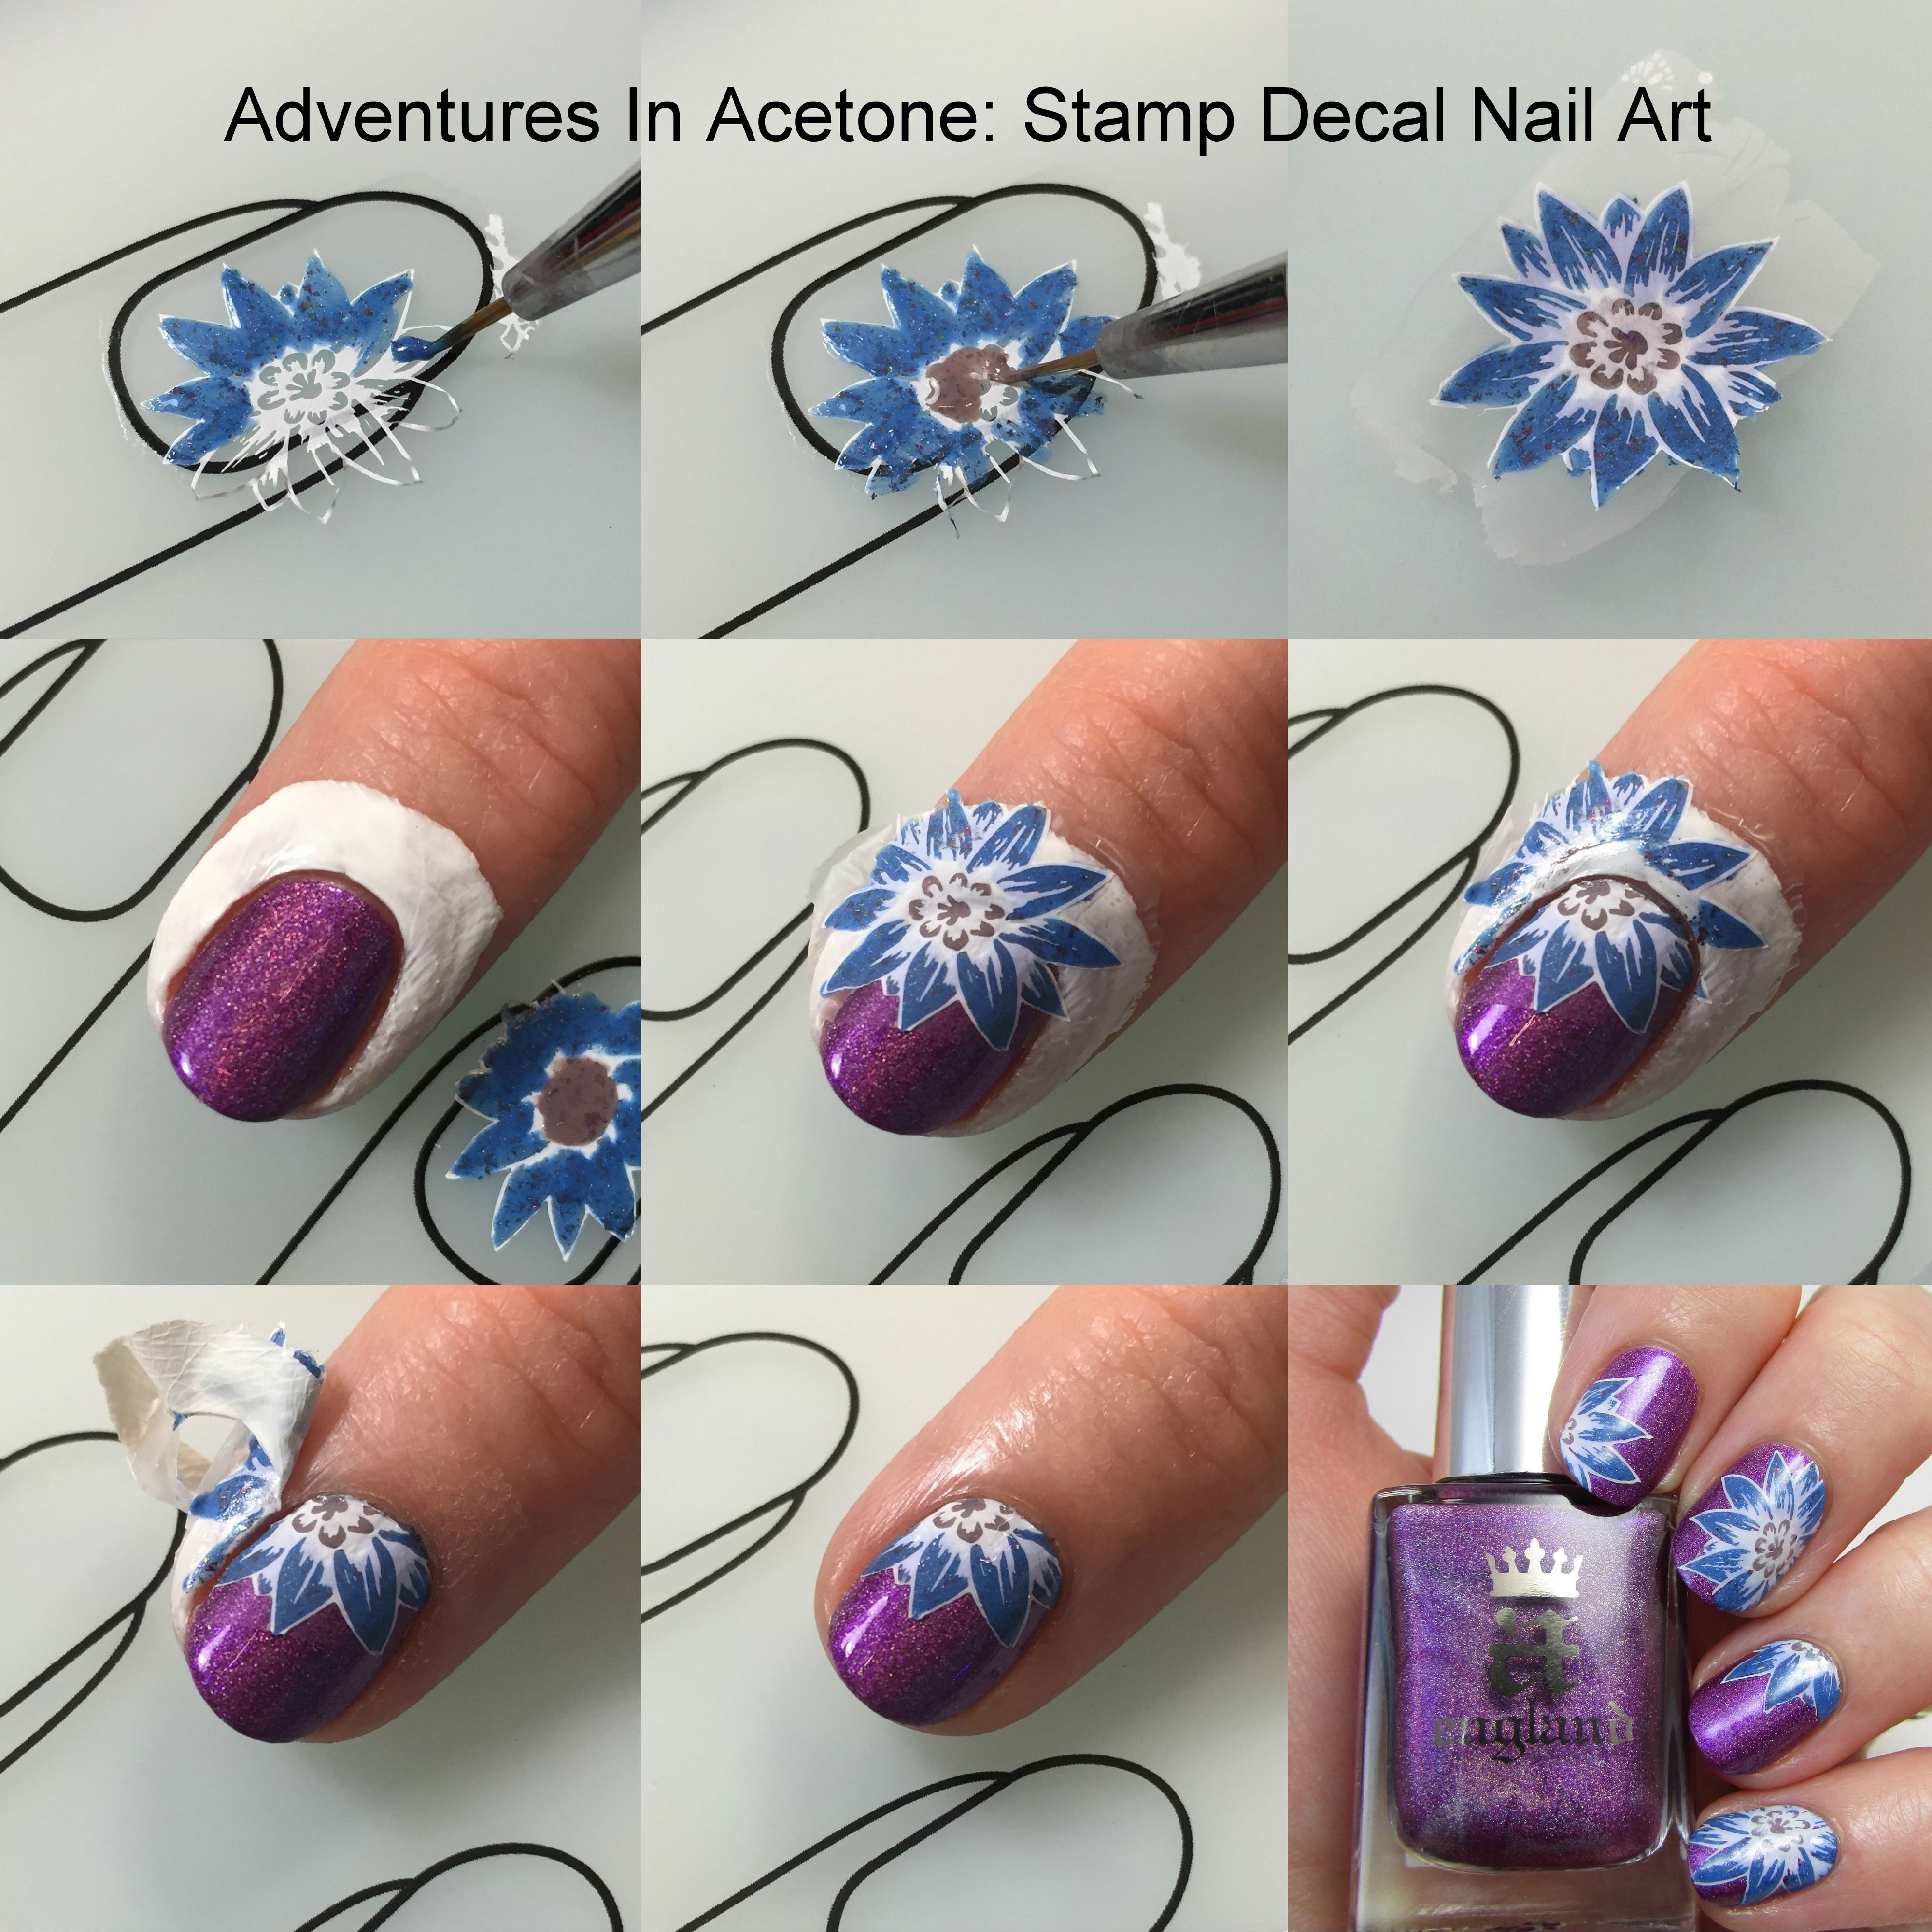 Stamping Decal Fl Nail Art Collage2